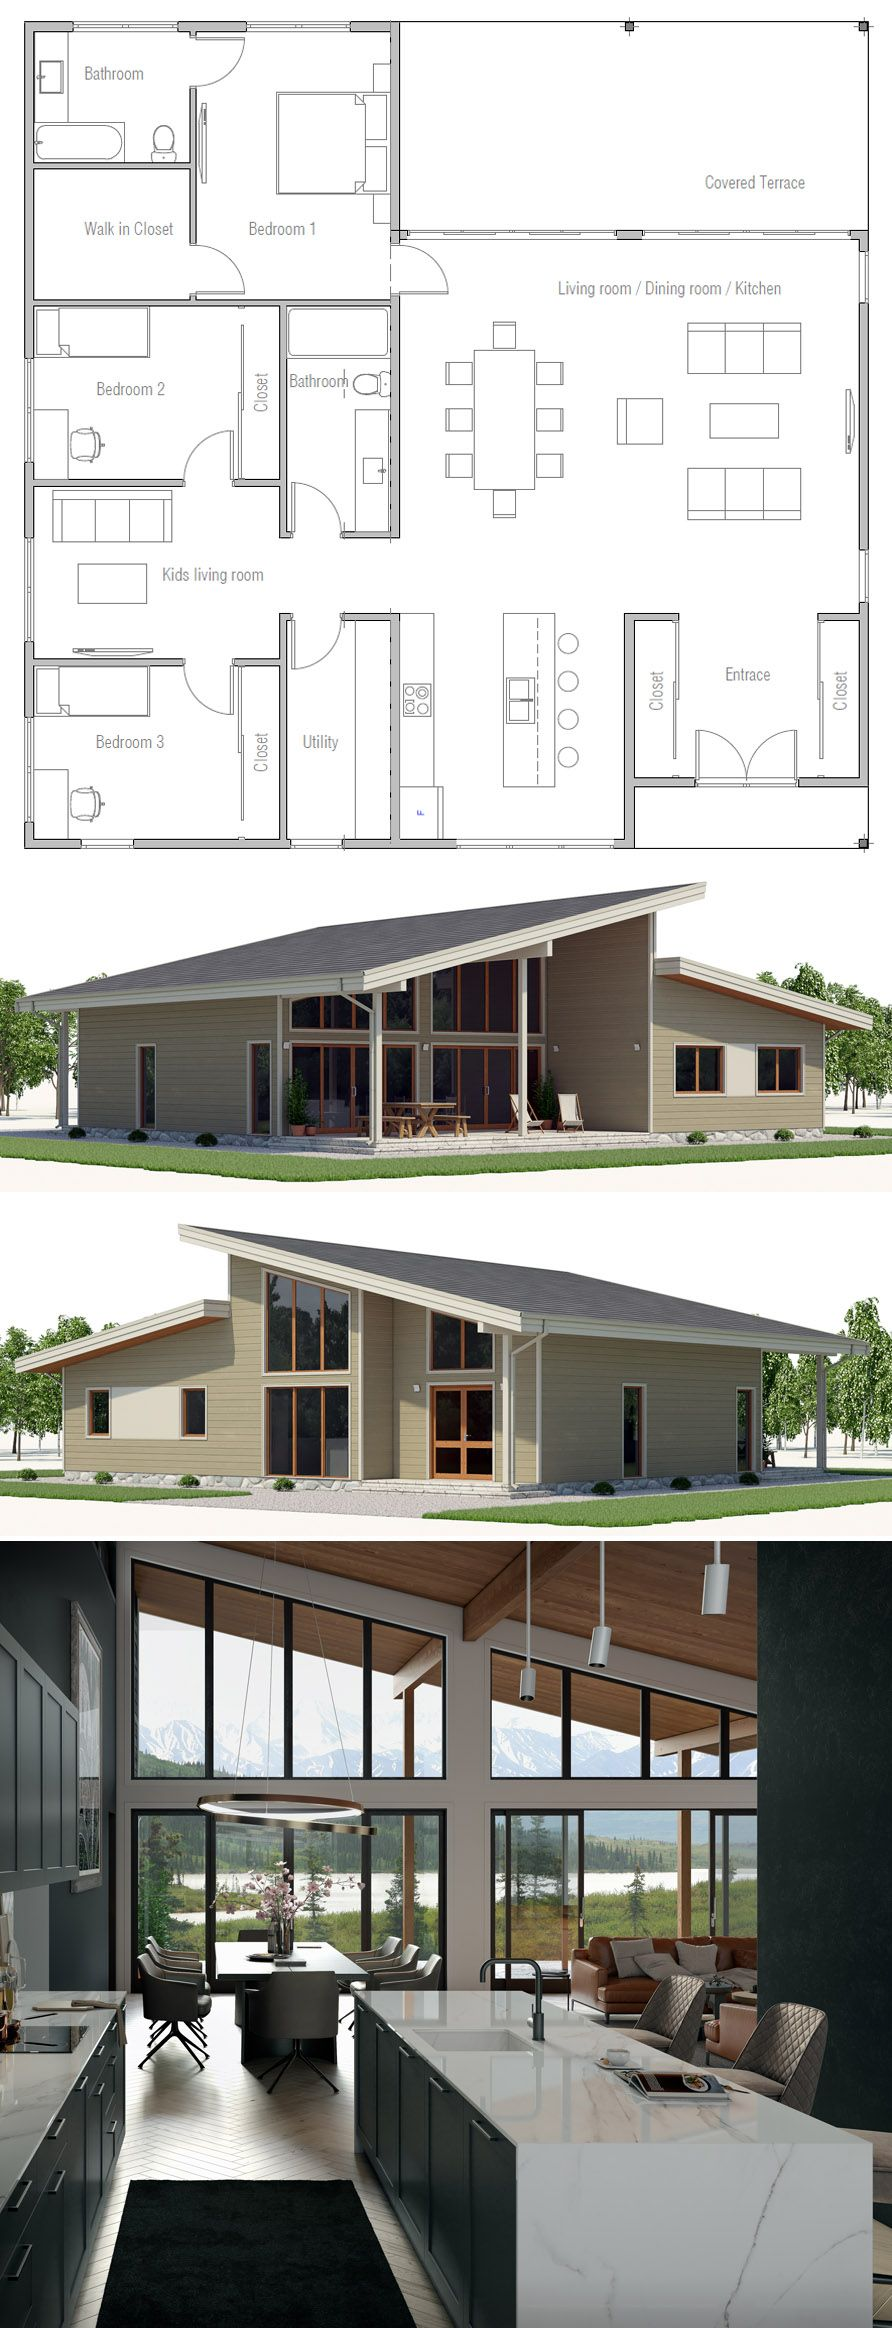 Architecture Home Plans Adhouseplans Homedecor Newhome House Designs Exterior Facade House House Exterior